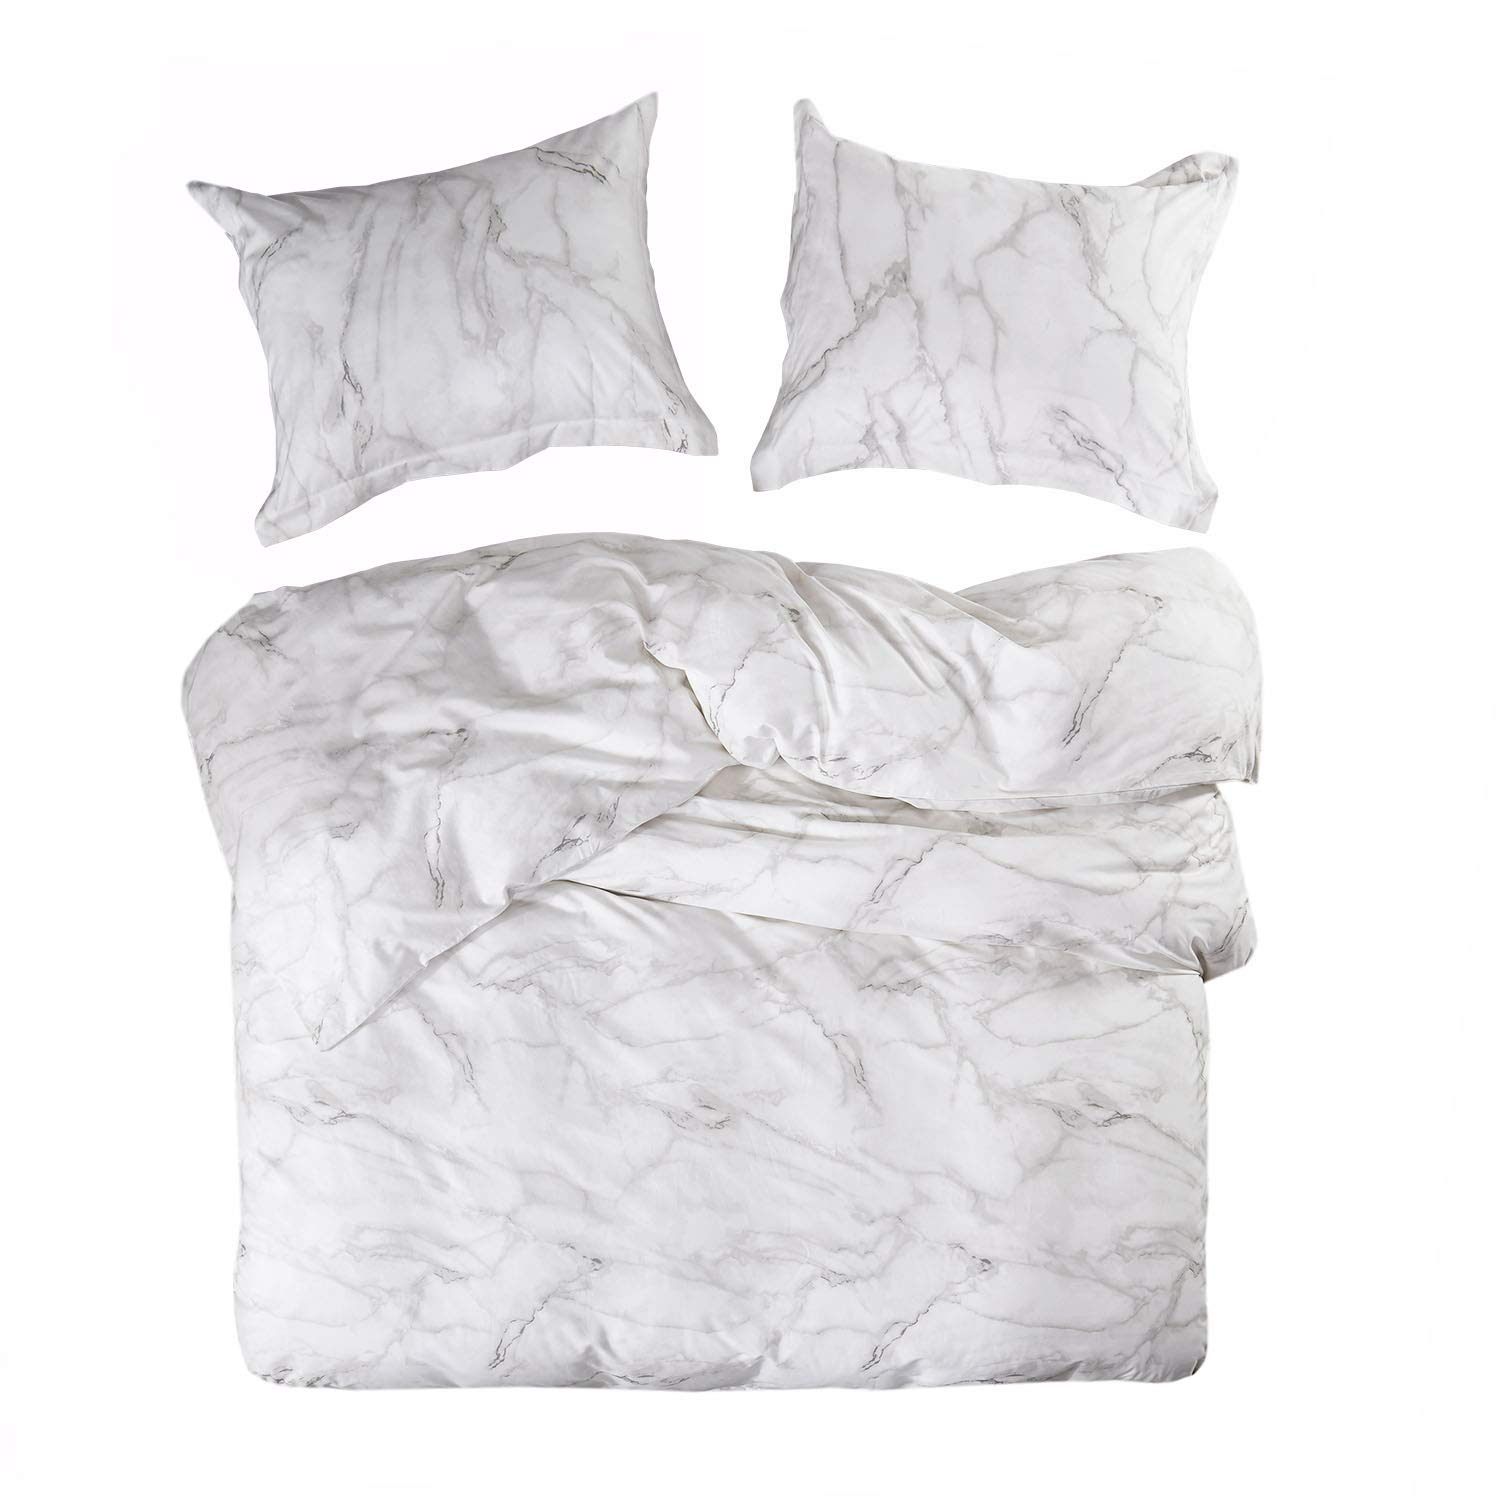 cff5c4990878 Details about Wake In Cloud - Marble Duvet Cover Set